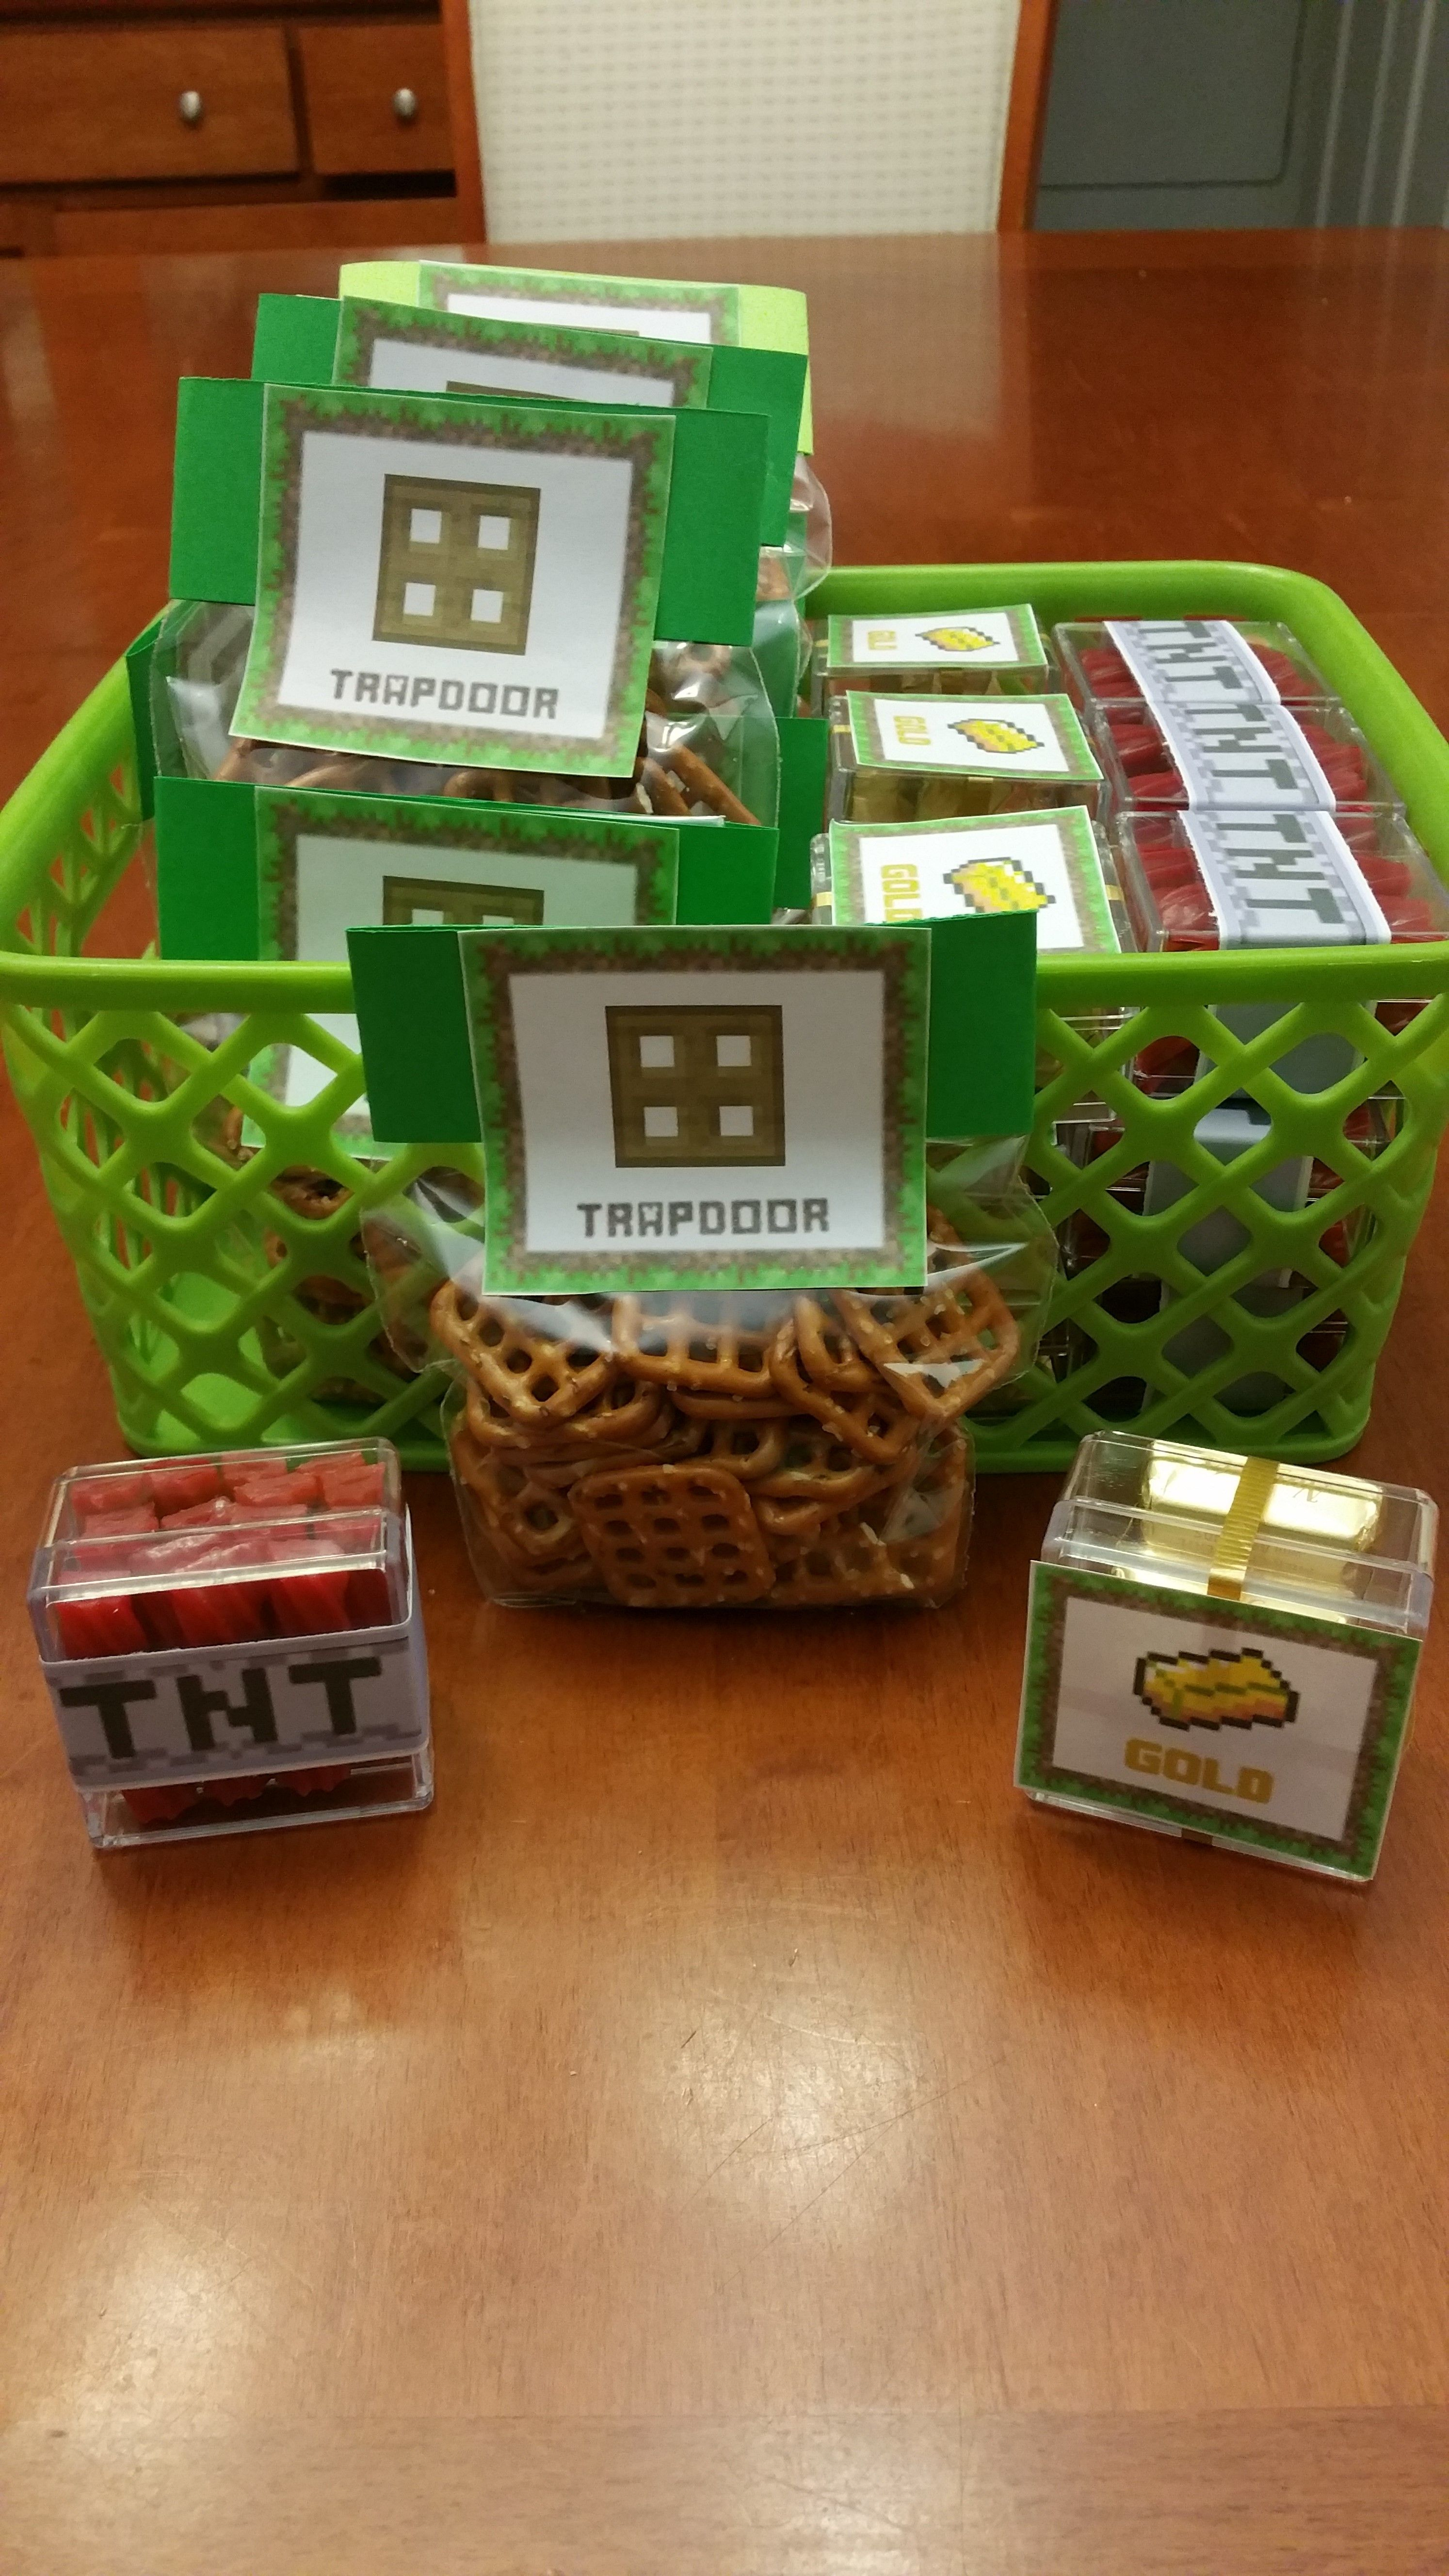 Licorice Tnt, Golden Nuggets, And Trap Doors For Party Favors